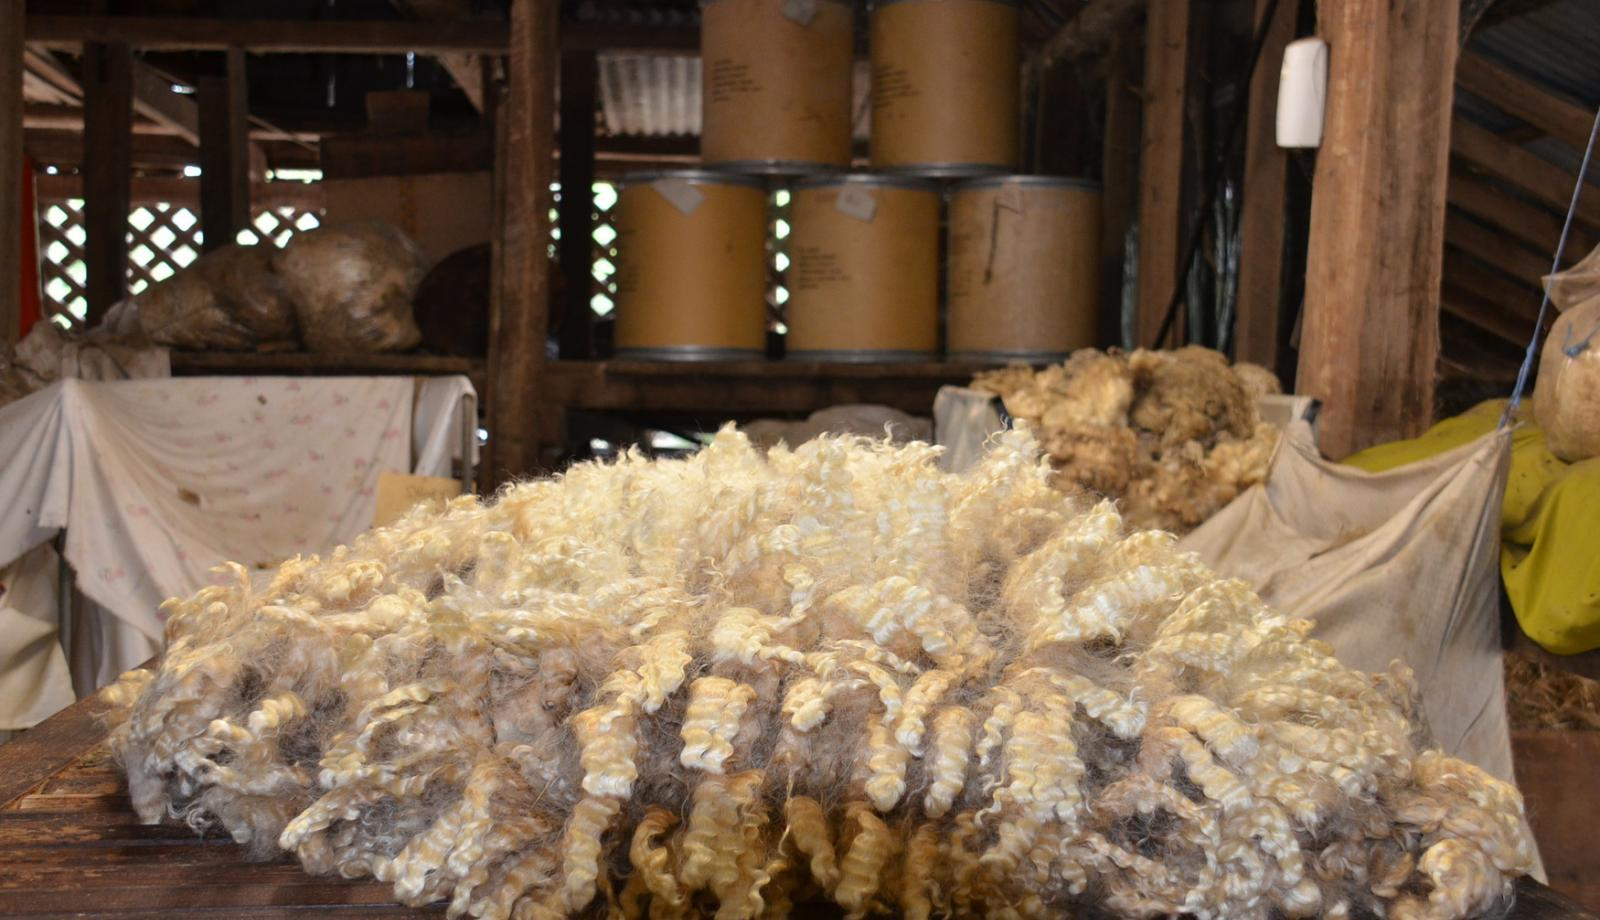 Scam targets wool exports